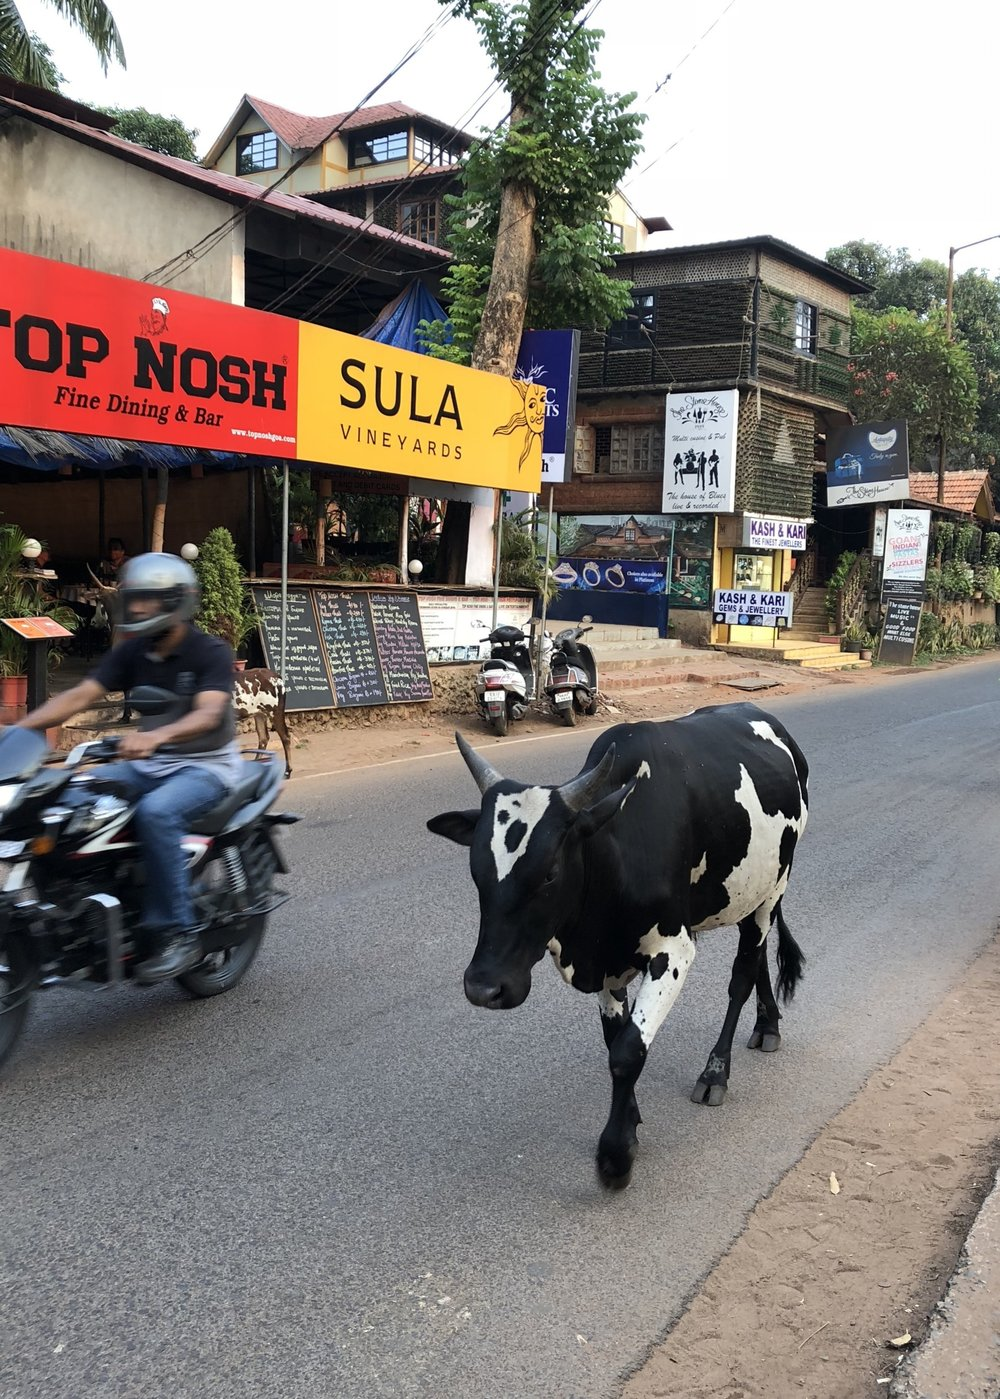 Traffic in Goa